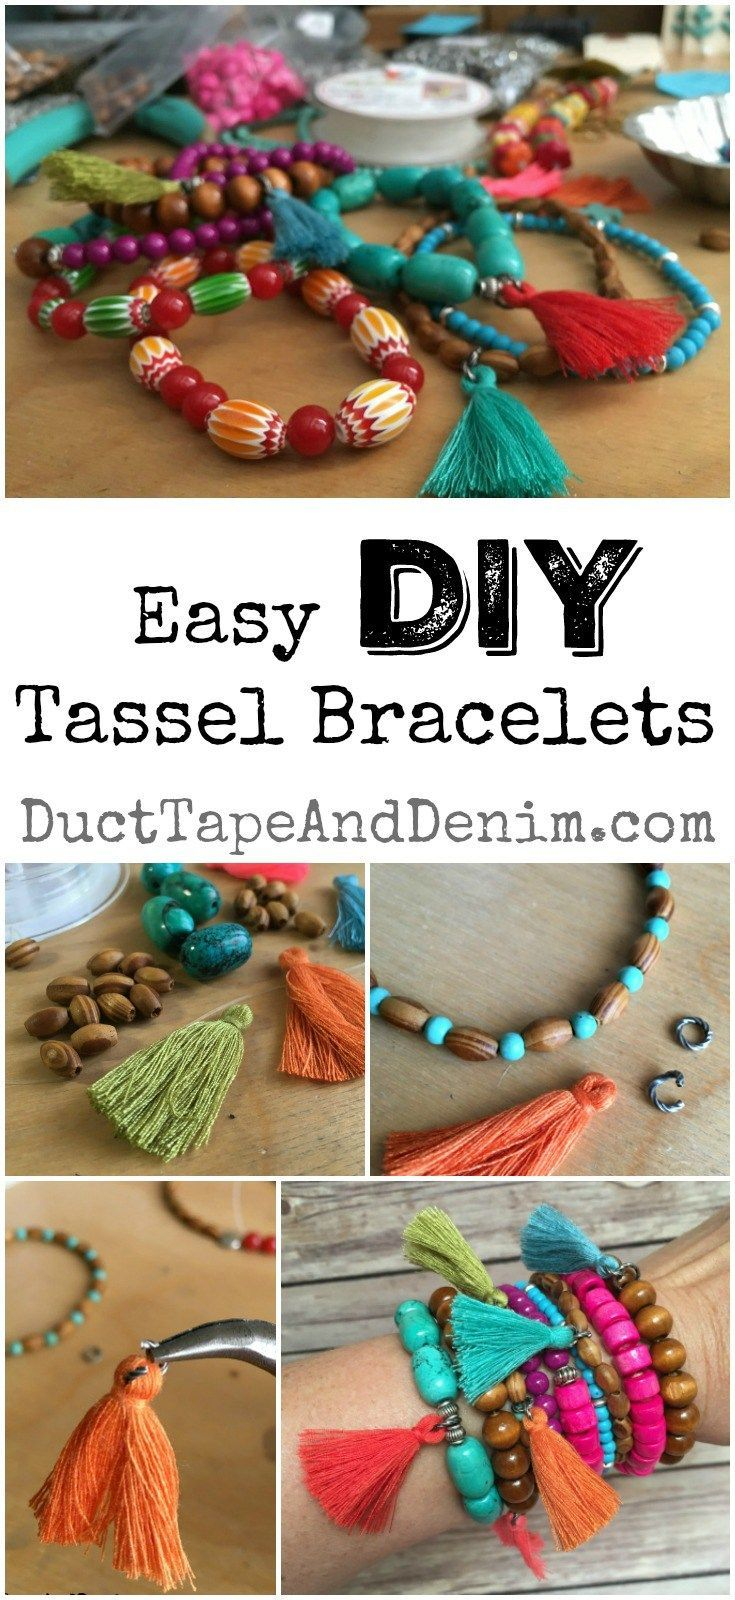 191 best diy jewelry images on pinterest | diy jewelry, blouses